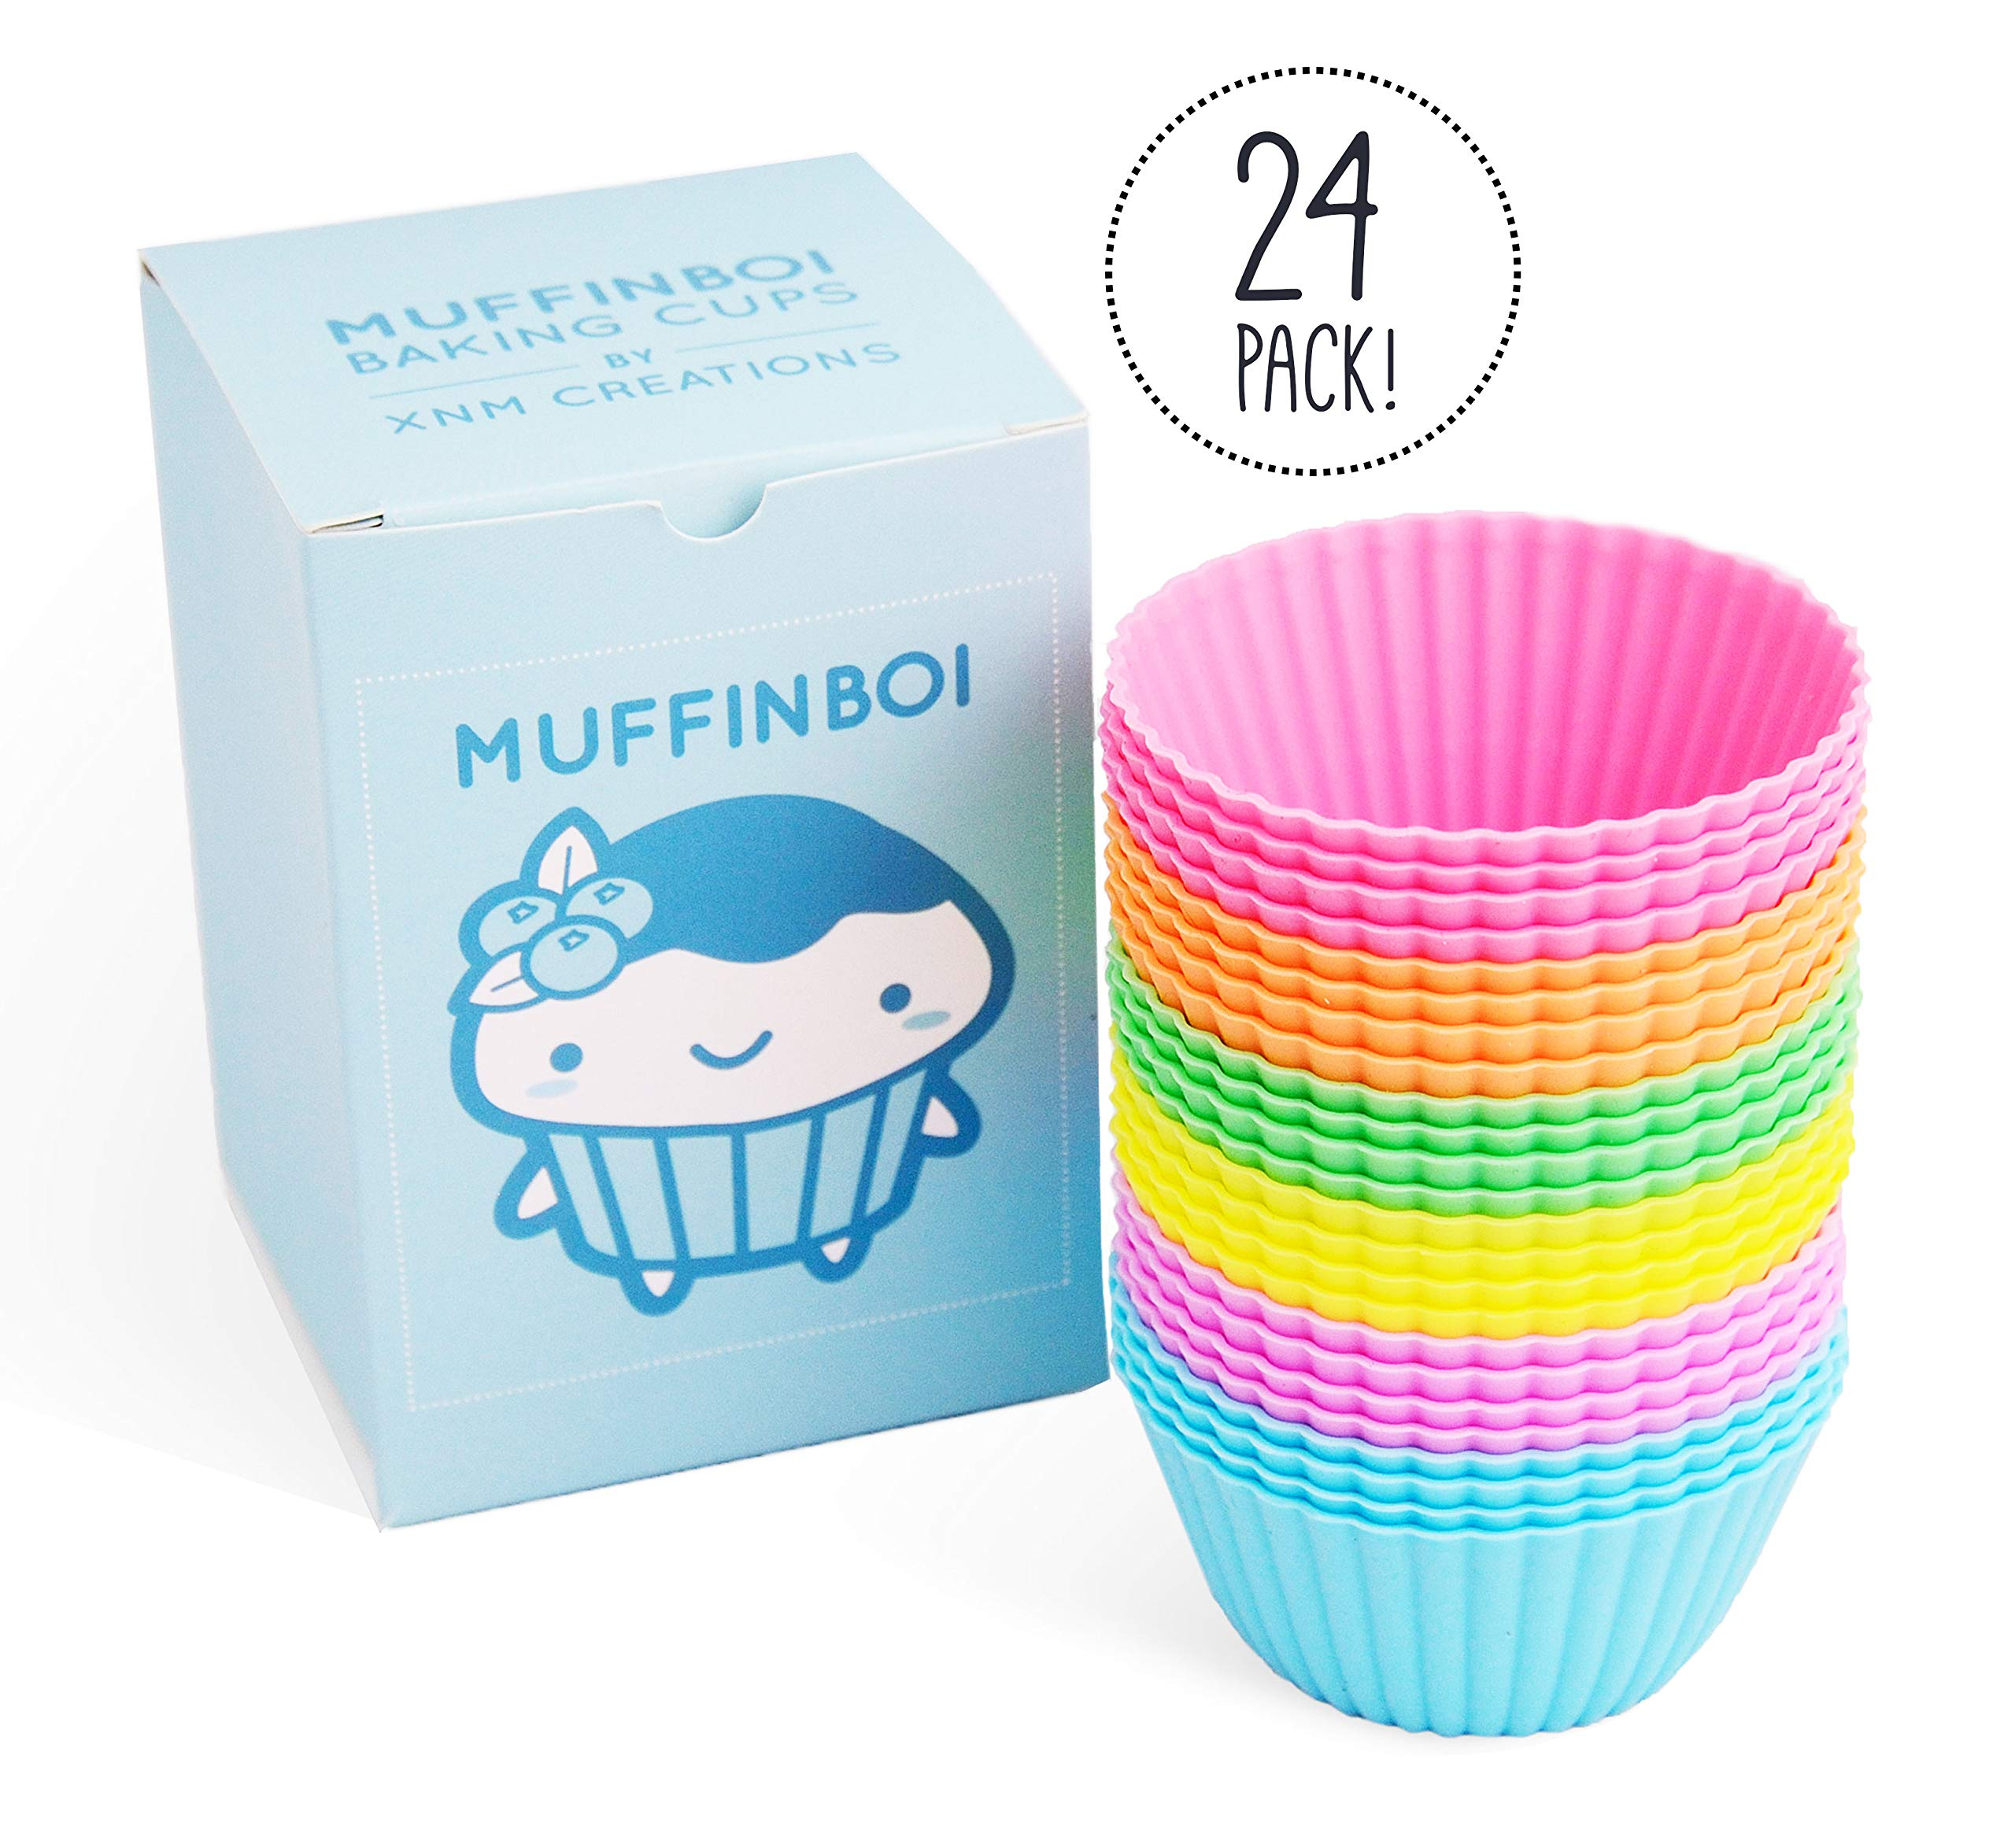 Muffinboi by XNM Creations | Premium Silicone Baking Cupcake Muffin Liner Cups | Standard Size | 24 Pack | Pastel Colors by Muffinboi